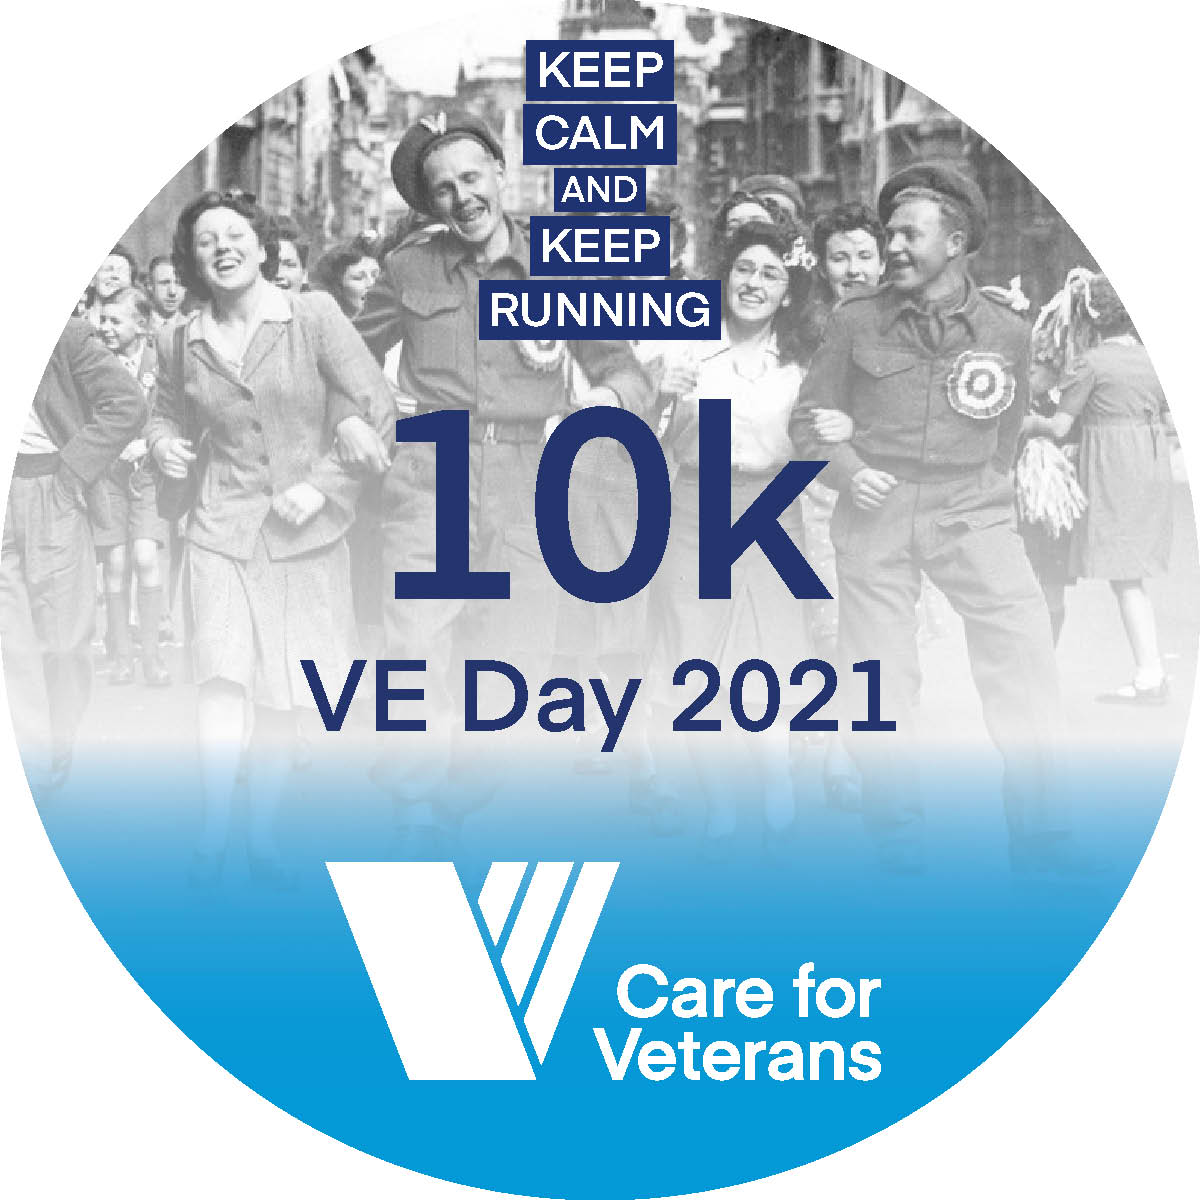 Logo of Race 10k this VE Day 2021